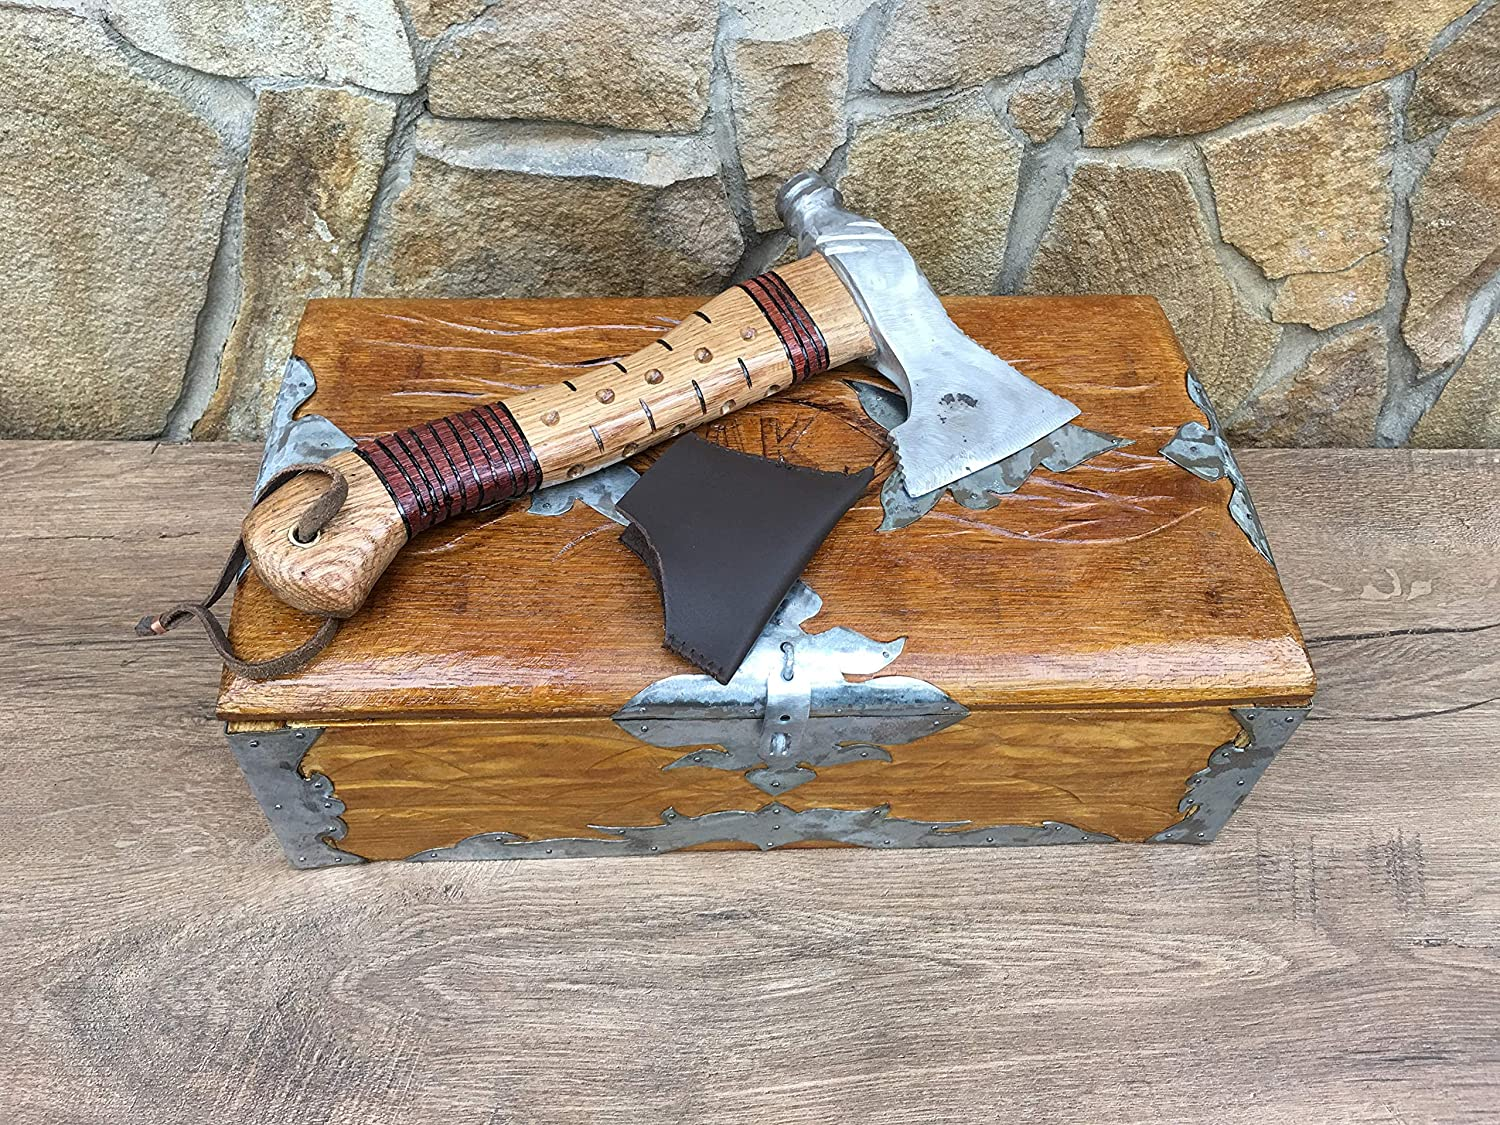 viking metal art Viking axe mens gift tomahawk wooden art gift for men,mens birthday gift bearded axe iron anniversary hatchet axe